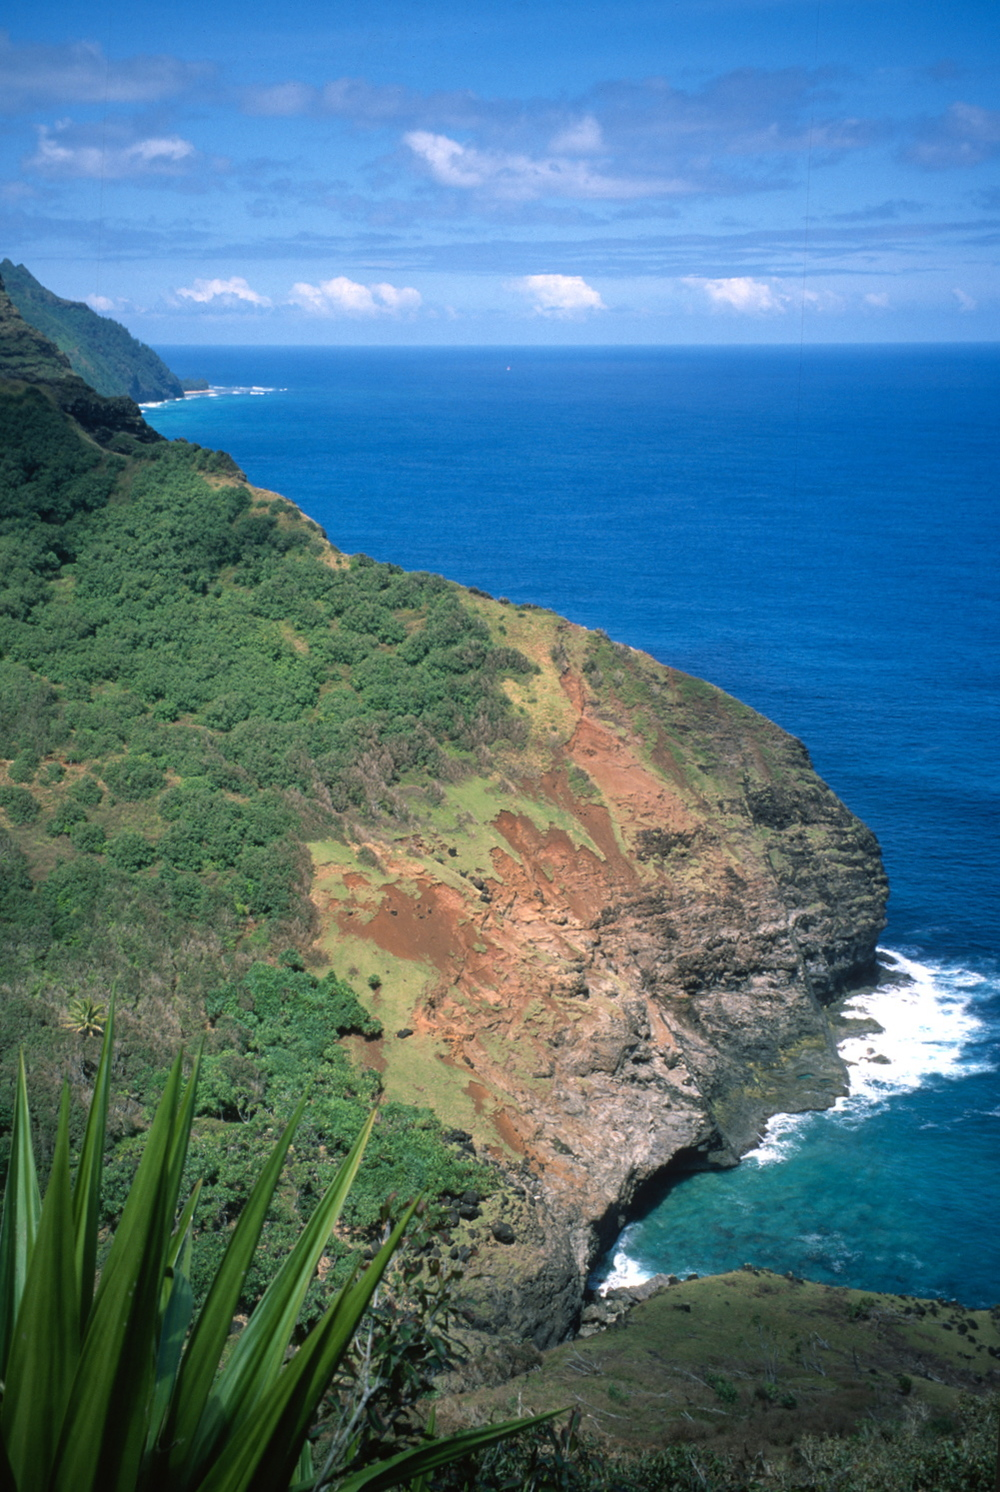 The Kalalau Trail follows the folds of the cliffs, climbing in and out of deep, narrow valleys.